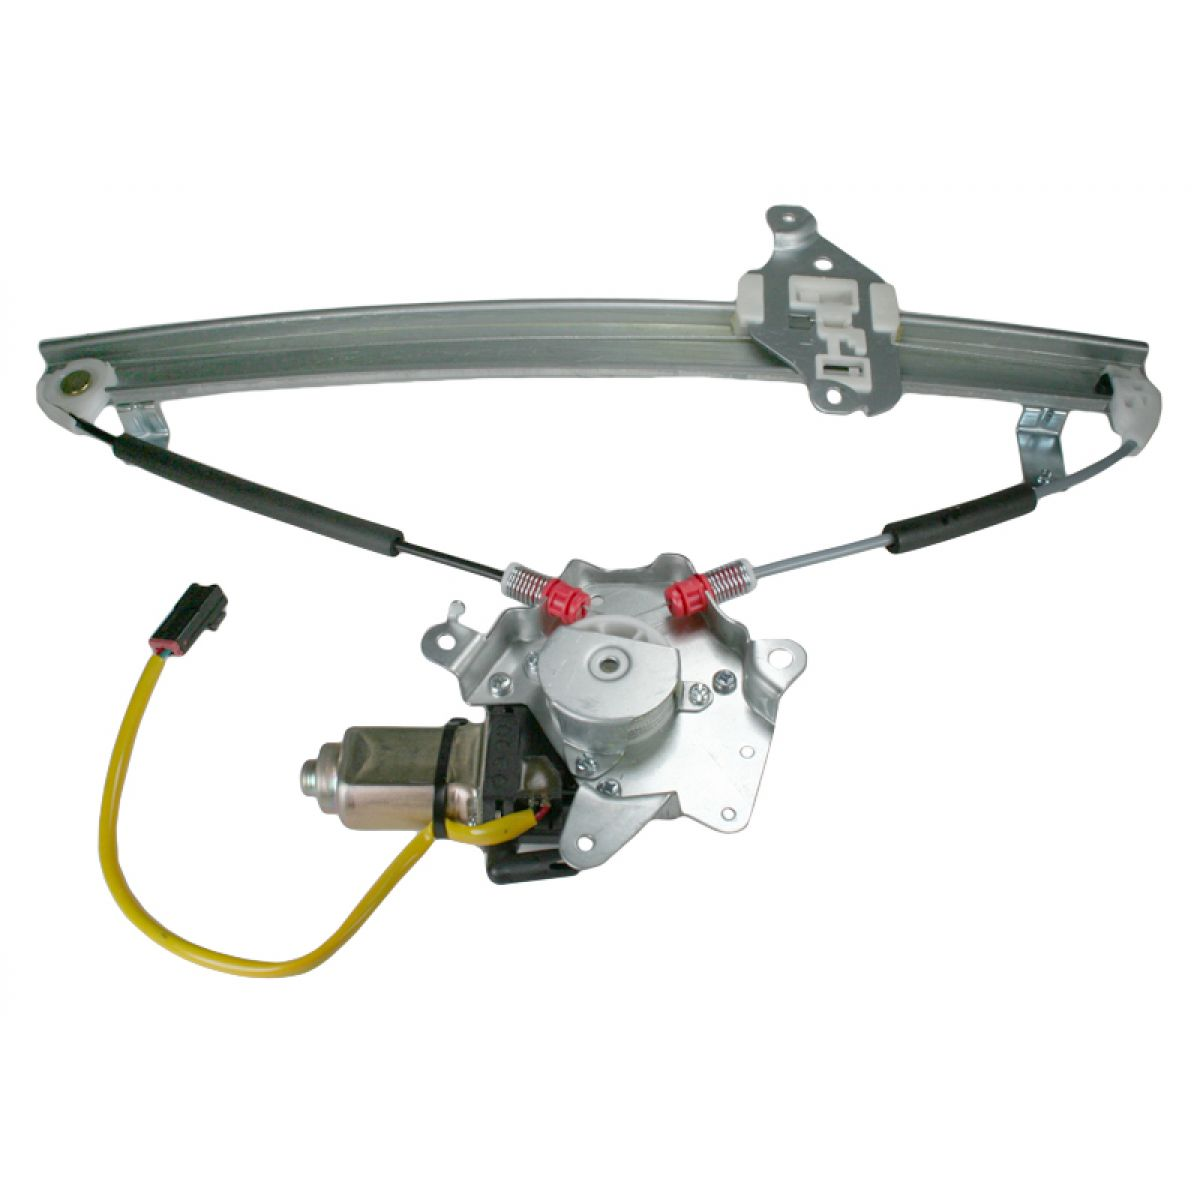 2000 chevy impala window regulator ebay autos post for 2001 silverado window motor replacement